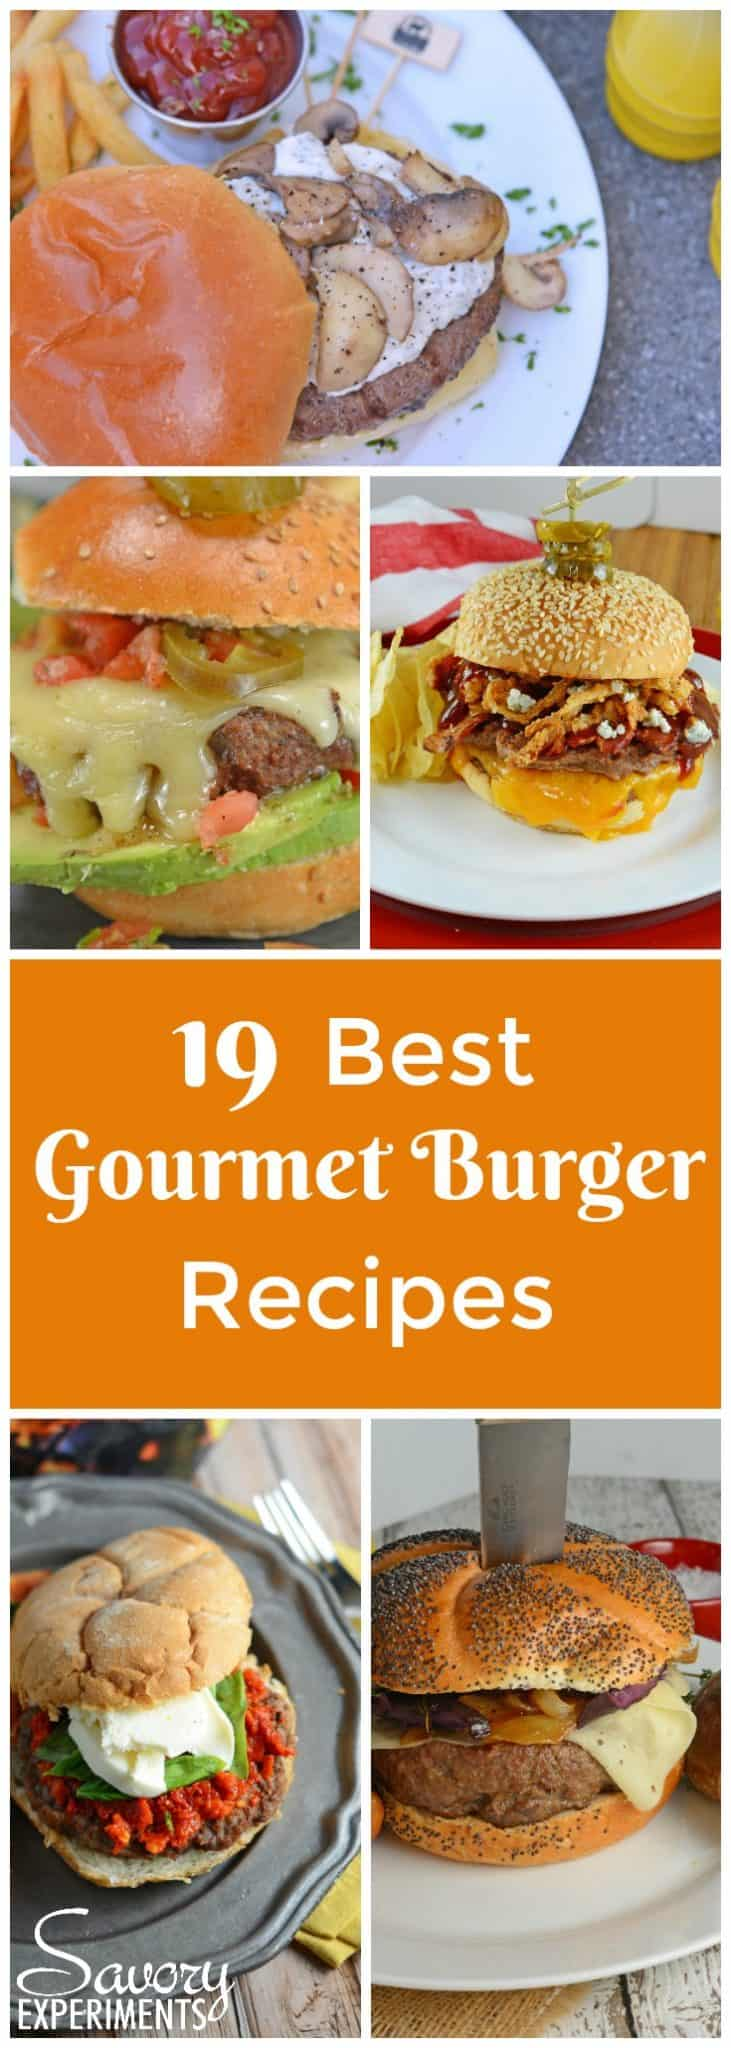 These are the best gourmet burger recipes! If you've ever wondered how to make gourmet burgers at home, you are going to be surprised at how easy they are! #gourmetburgerrecipes #gourmetburgerideas #gourmetbeefburgerrecipe #savoryexperiments